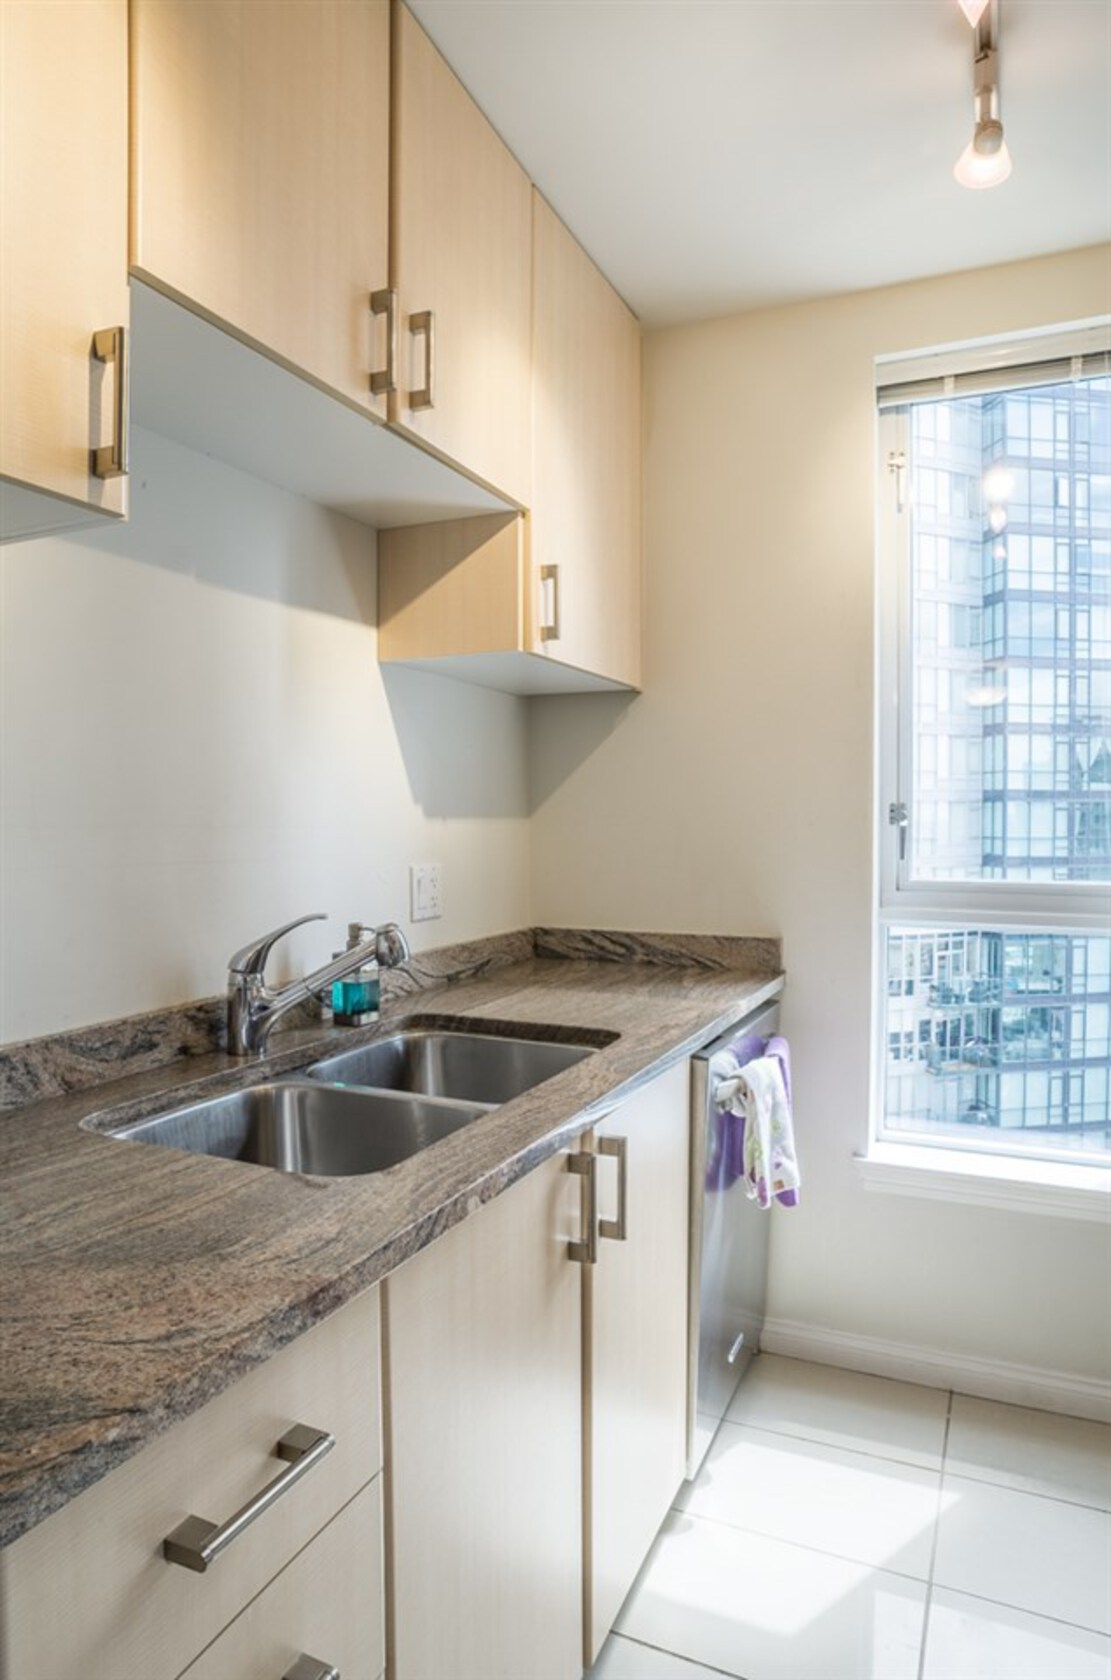 262128478-8 at 34th floor - 1211 Melville , Coal Harbour, Vancouver West